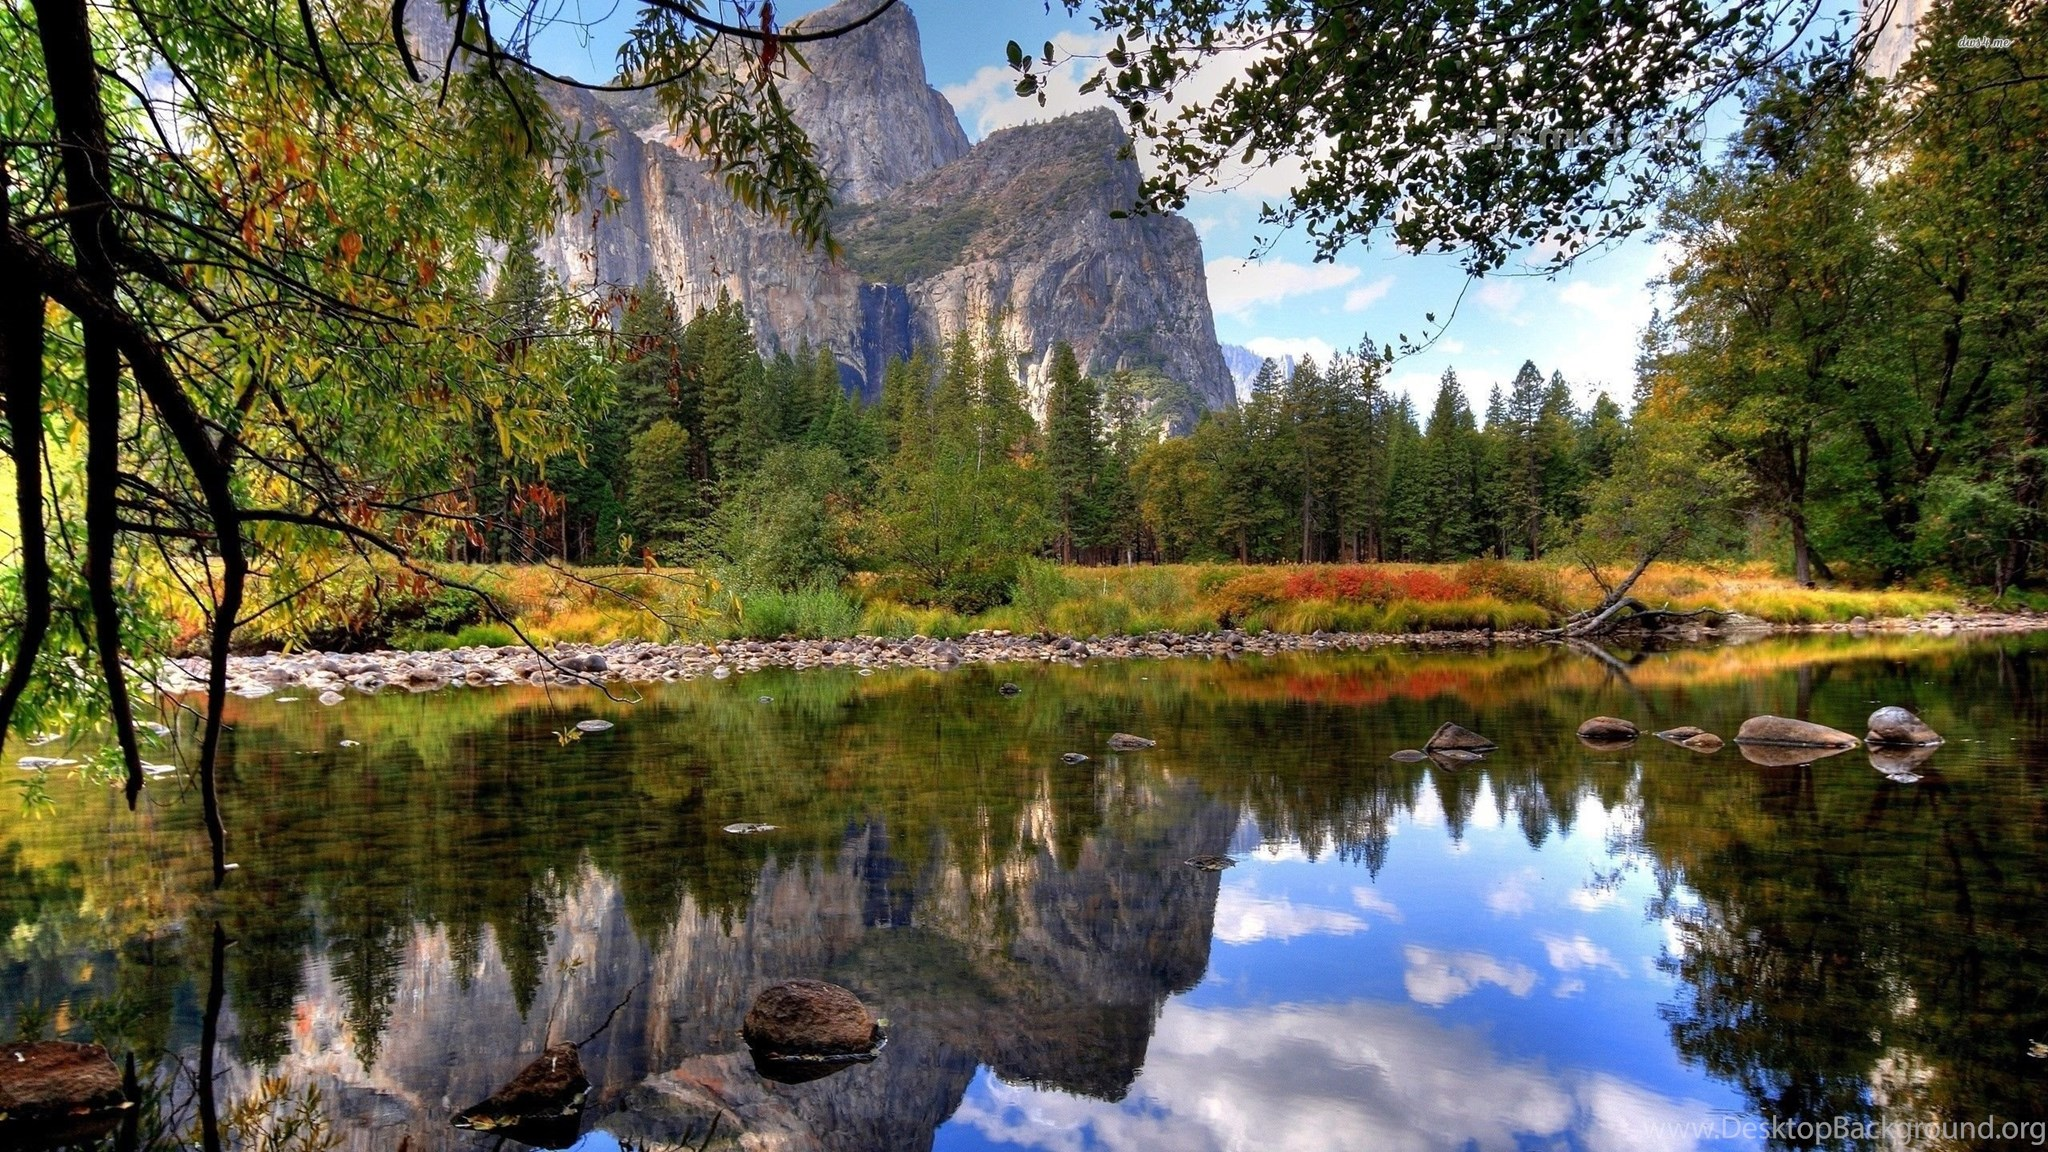 yosemite national park wallpapers nature wallpapers desktop background